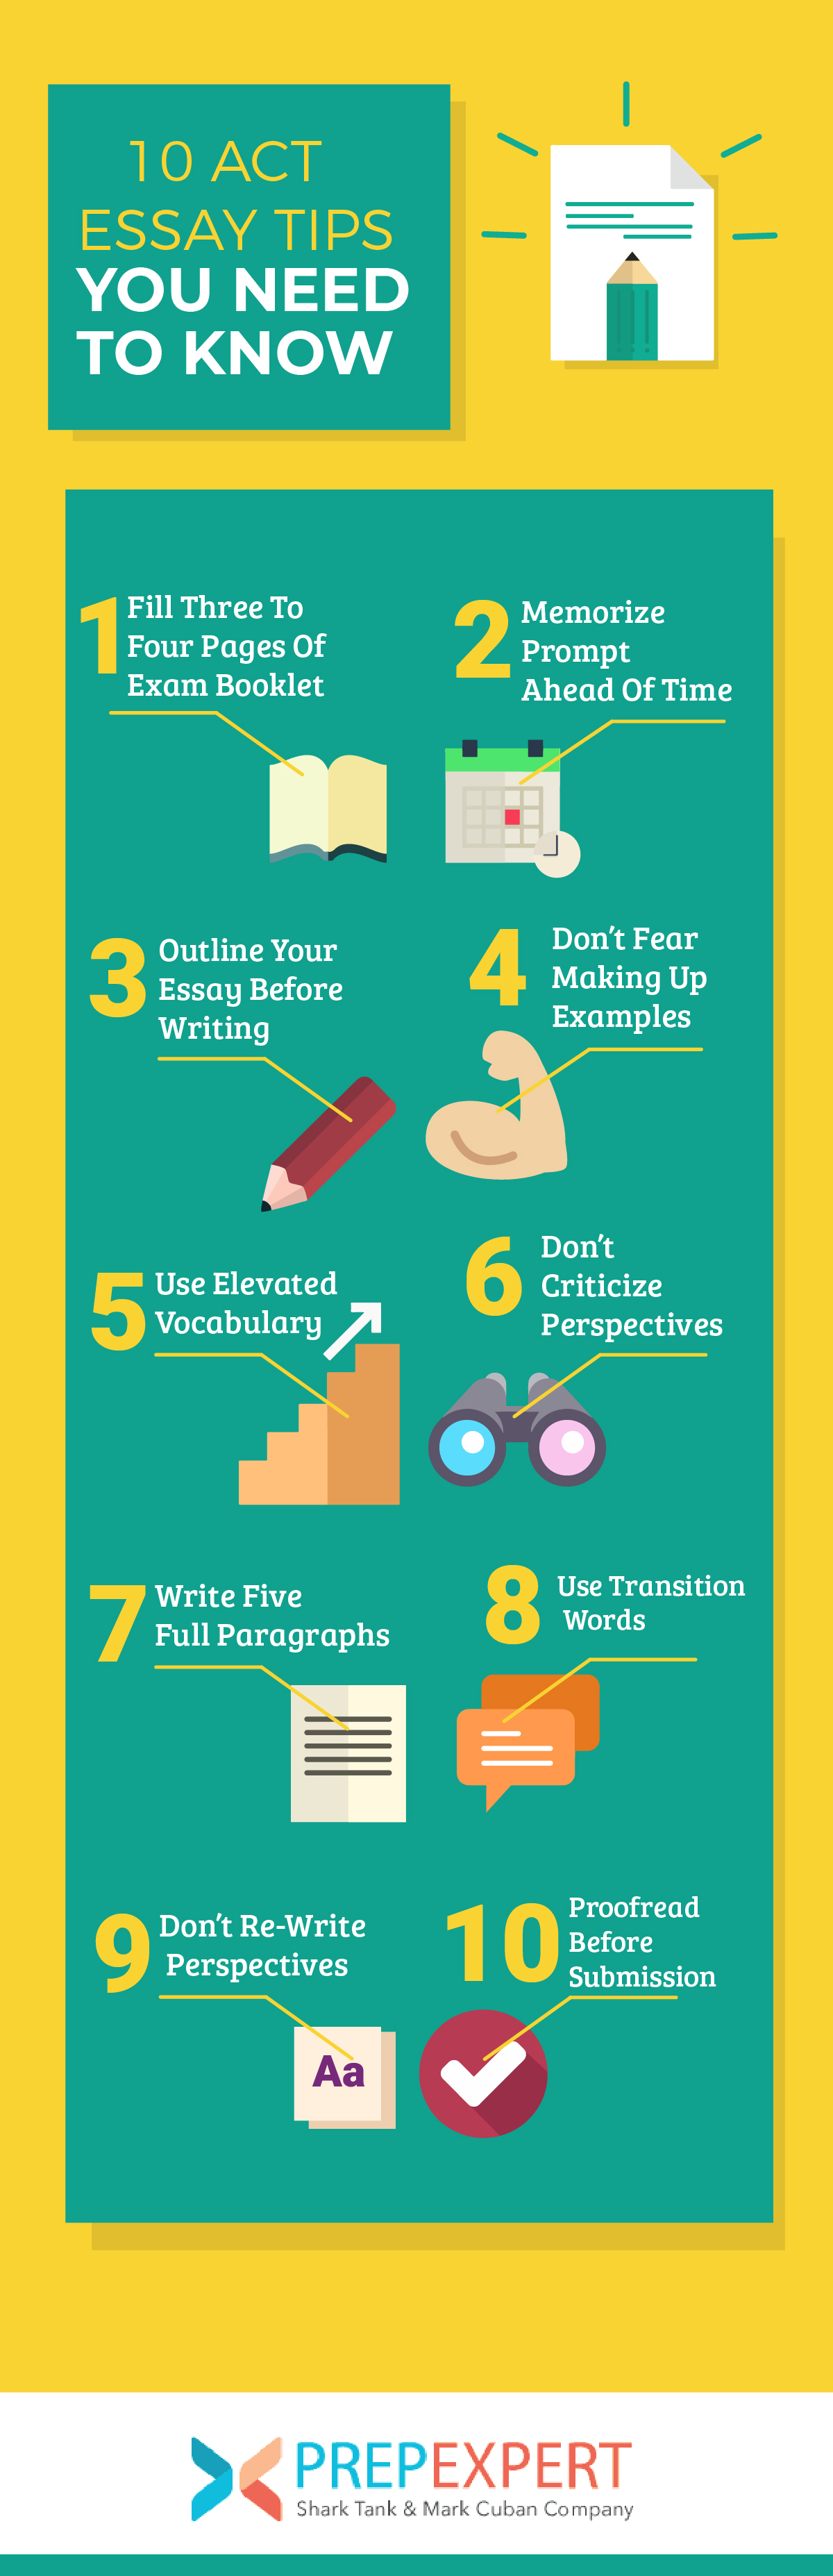 010 Essay Example 235585 Essayinfographics 052918 How To Write Wonderful Act Good Do You And Scene In An A Perfect Full